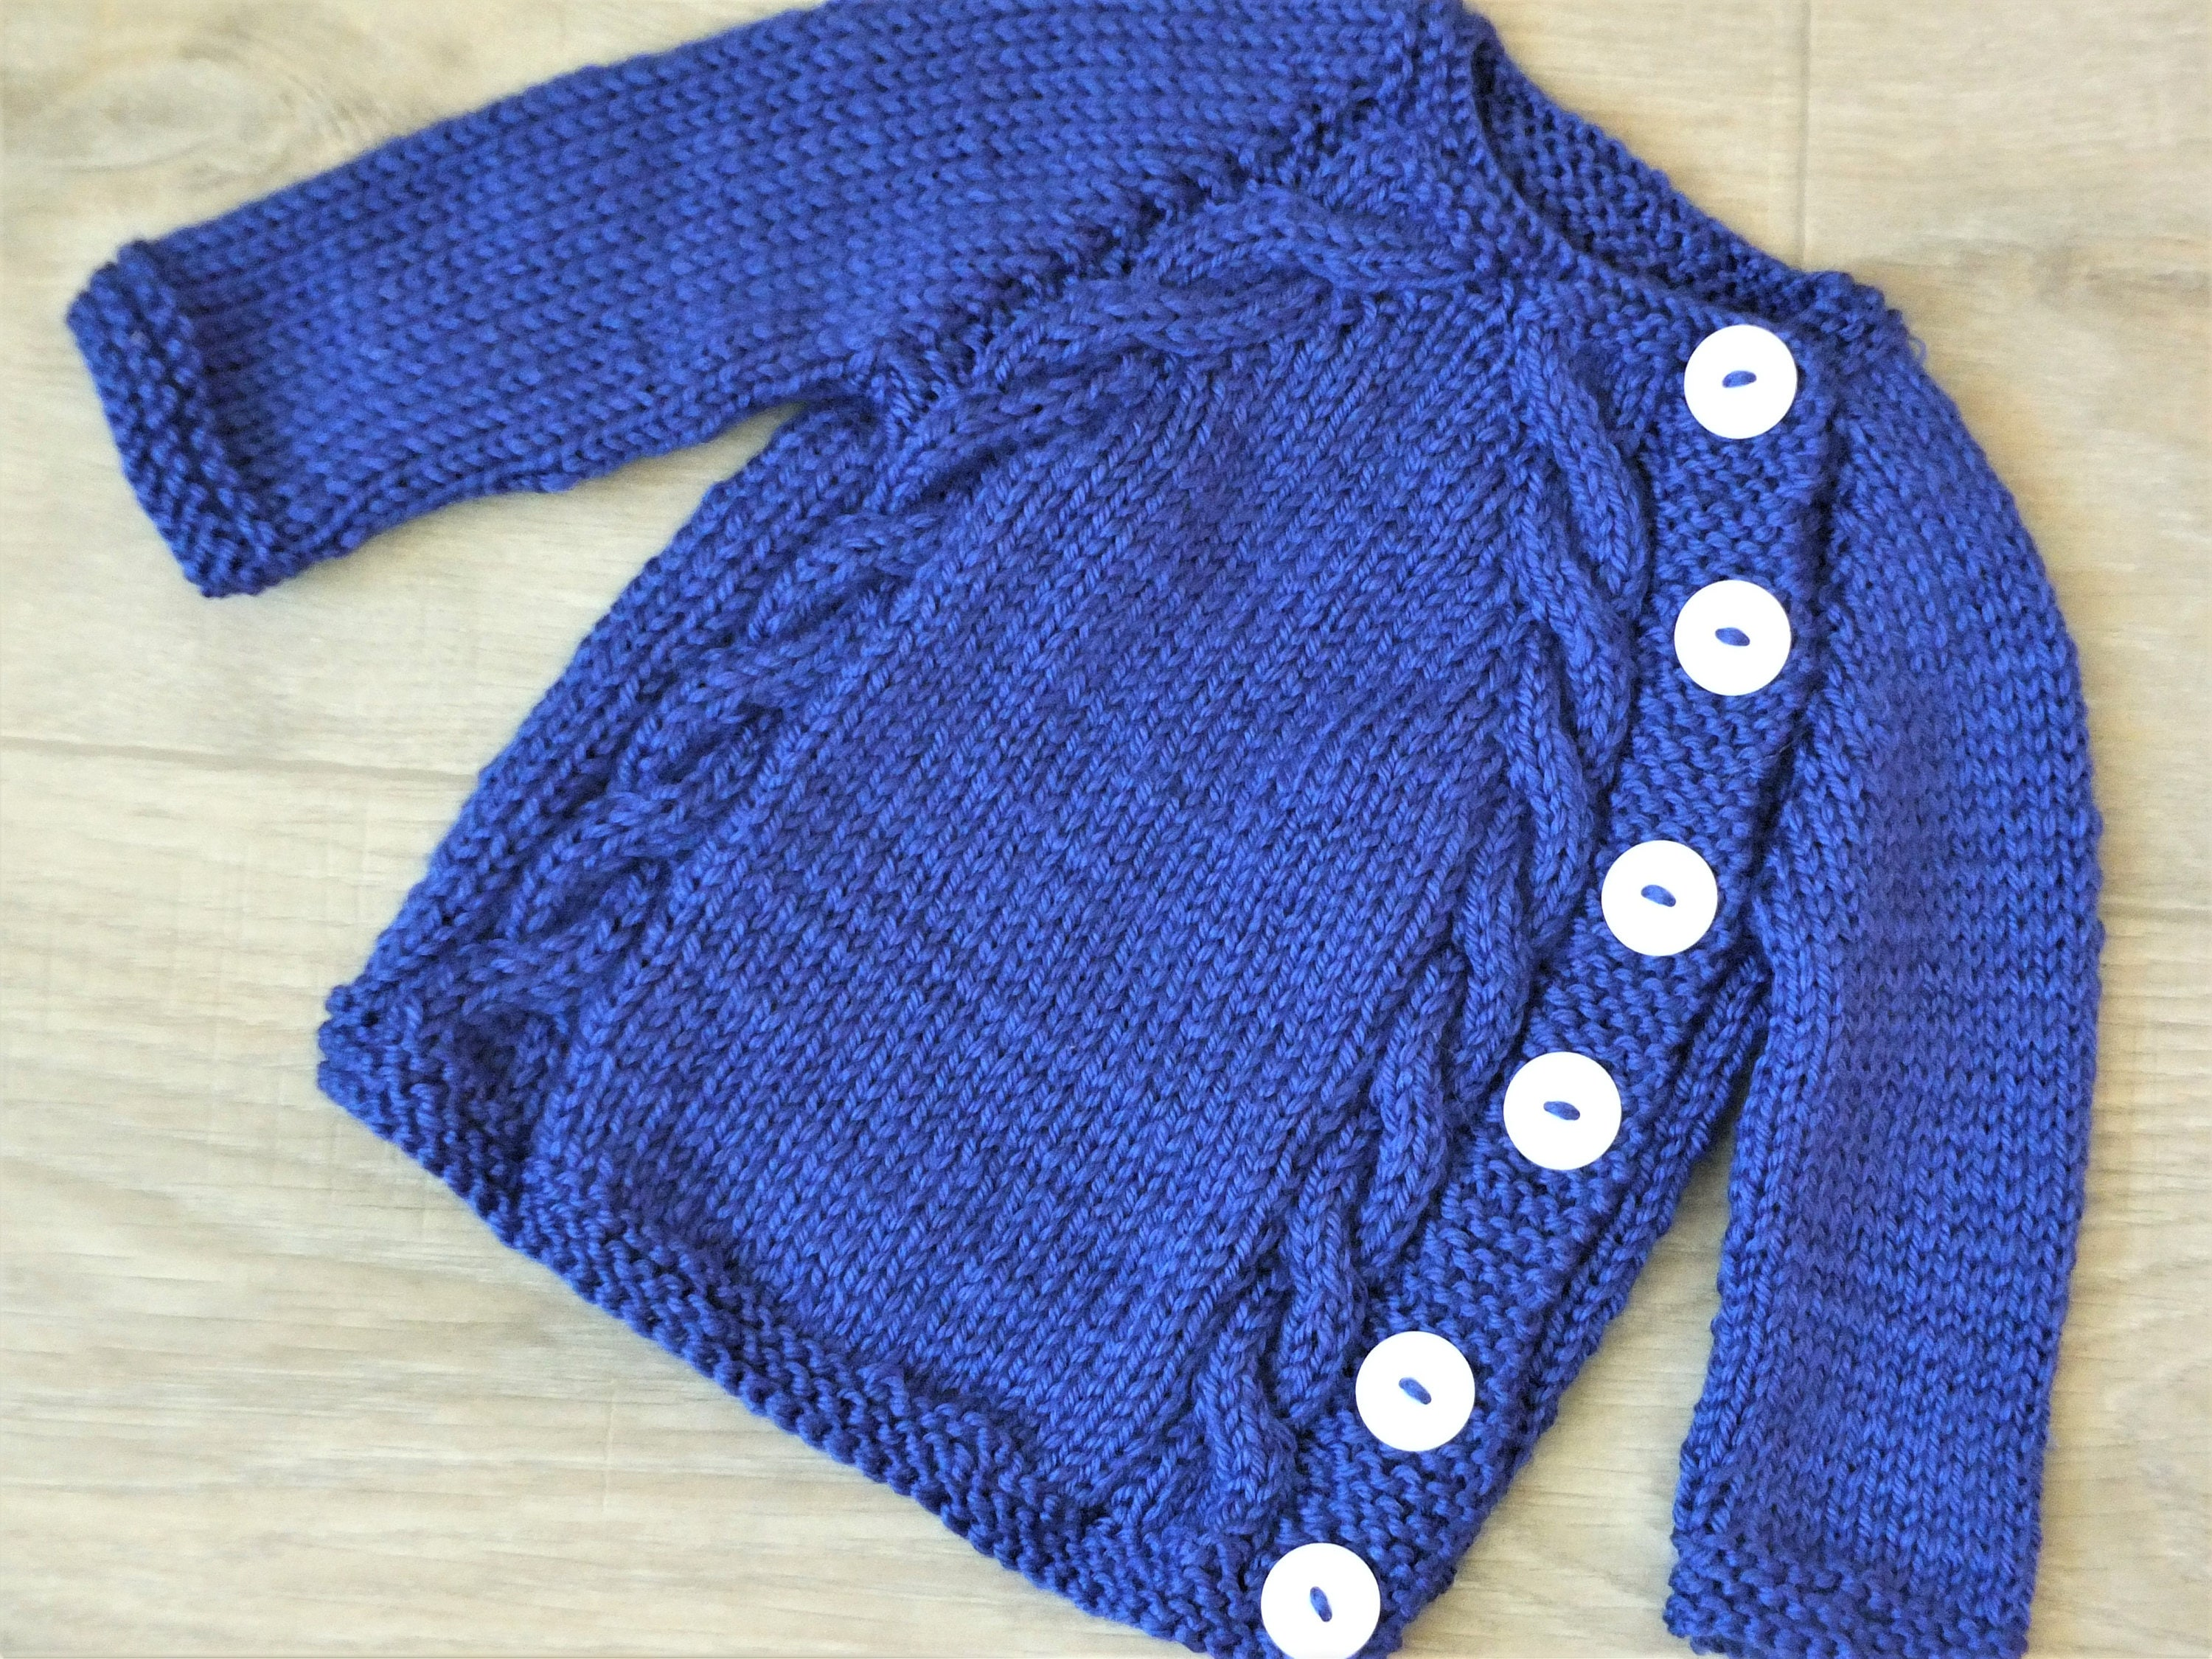 Hand Knitted Baby Boy Sweater Knit Baby Cardigan Navy